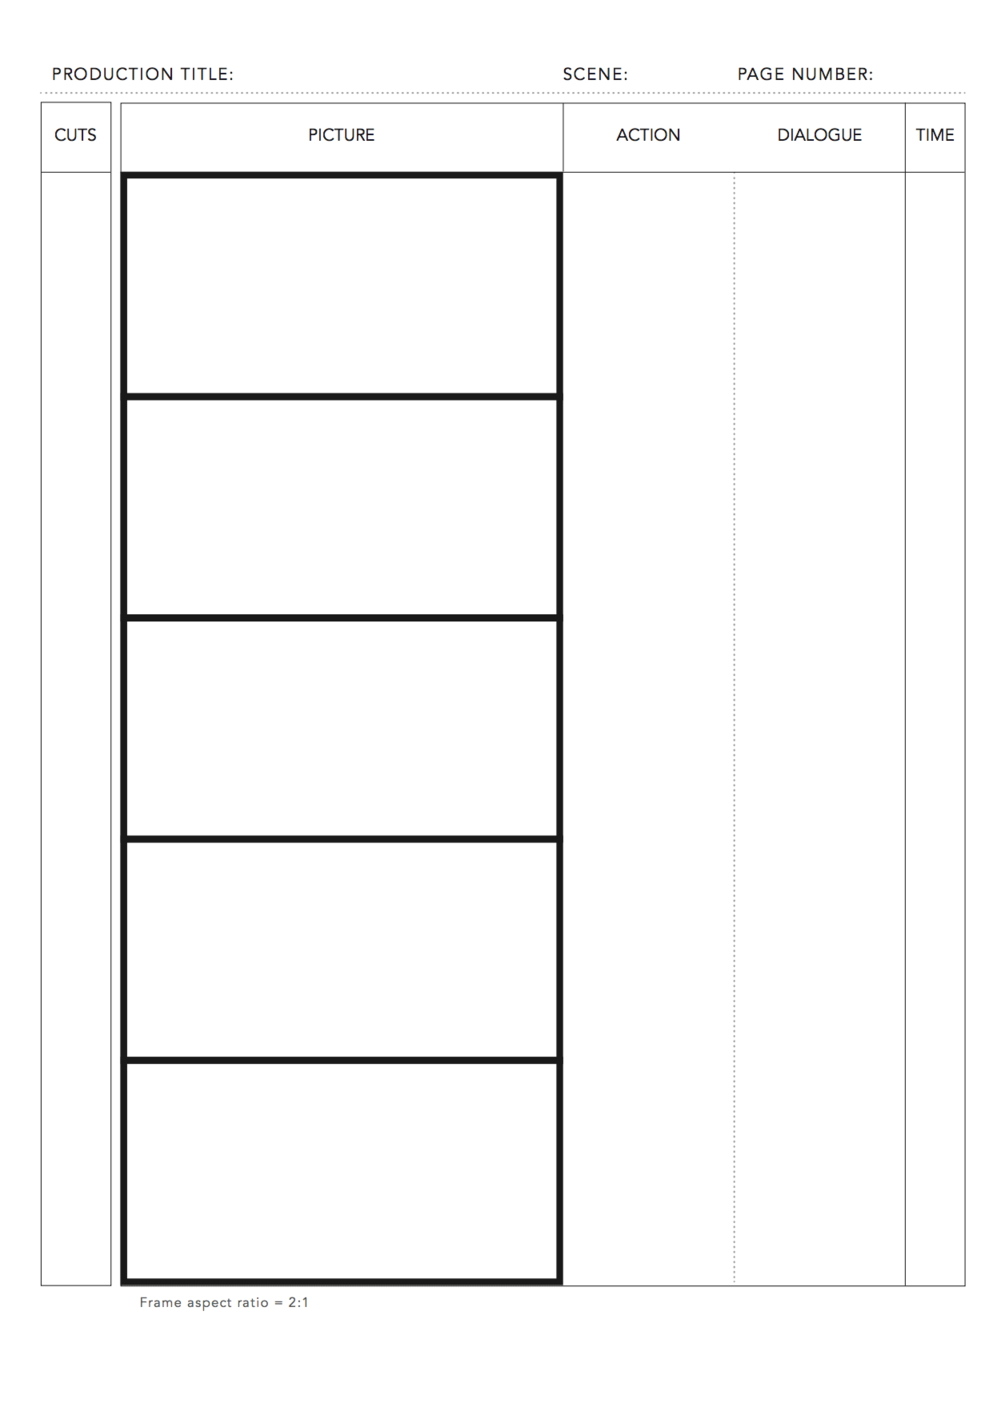 free pdf anime storyboard template for 2 1 aspect ratio on din a4 vertical for print  u0432 2020  u0433